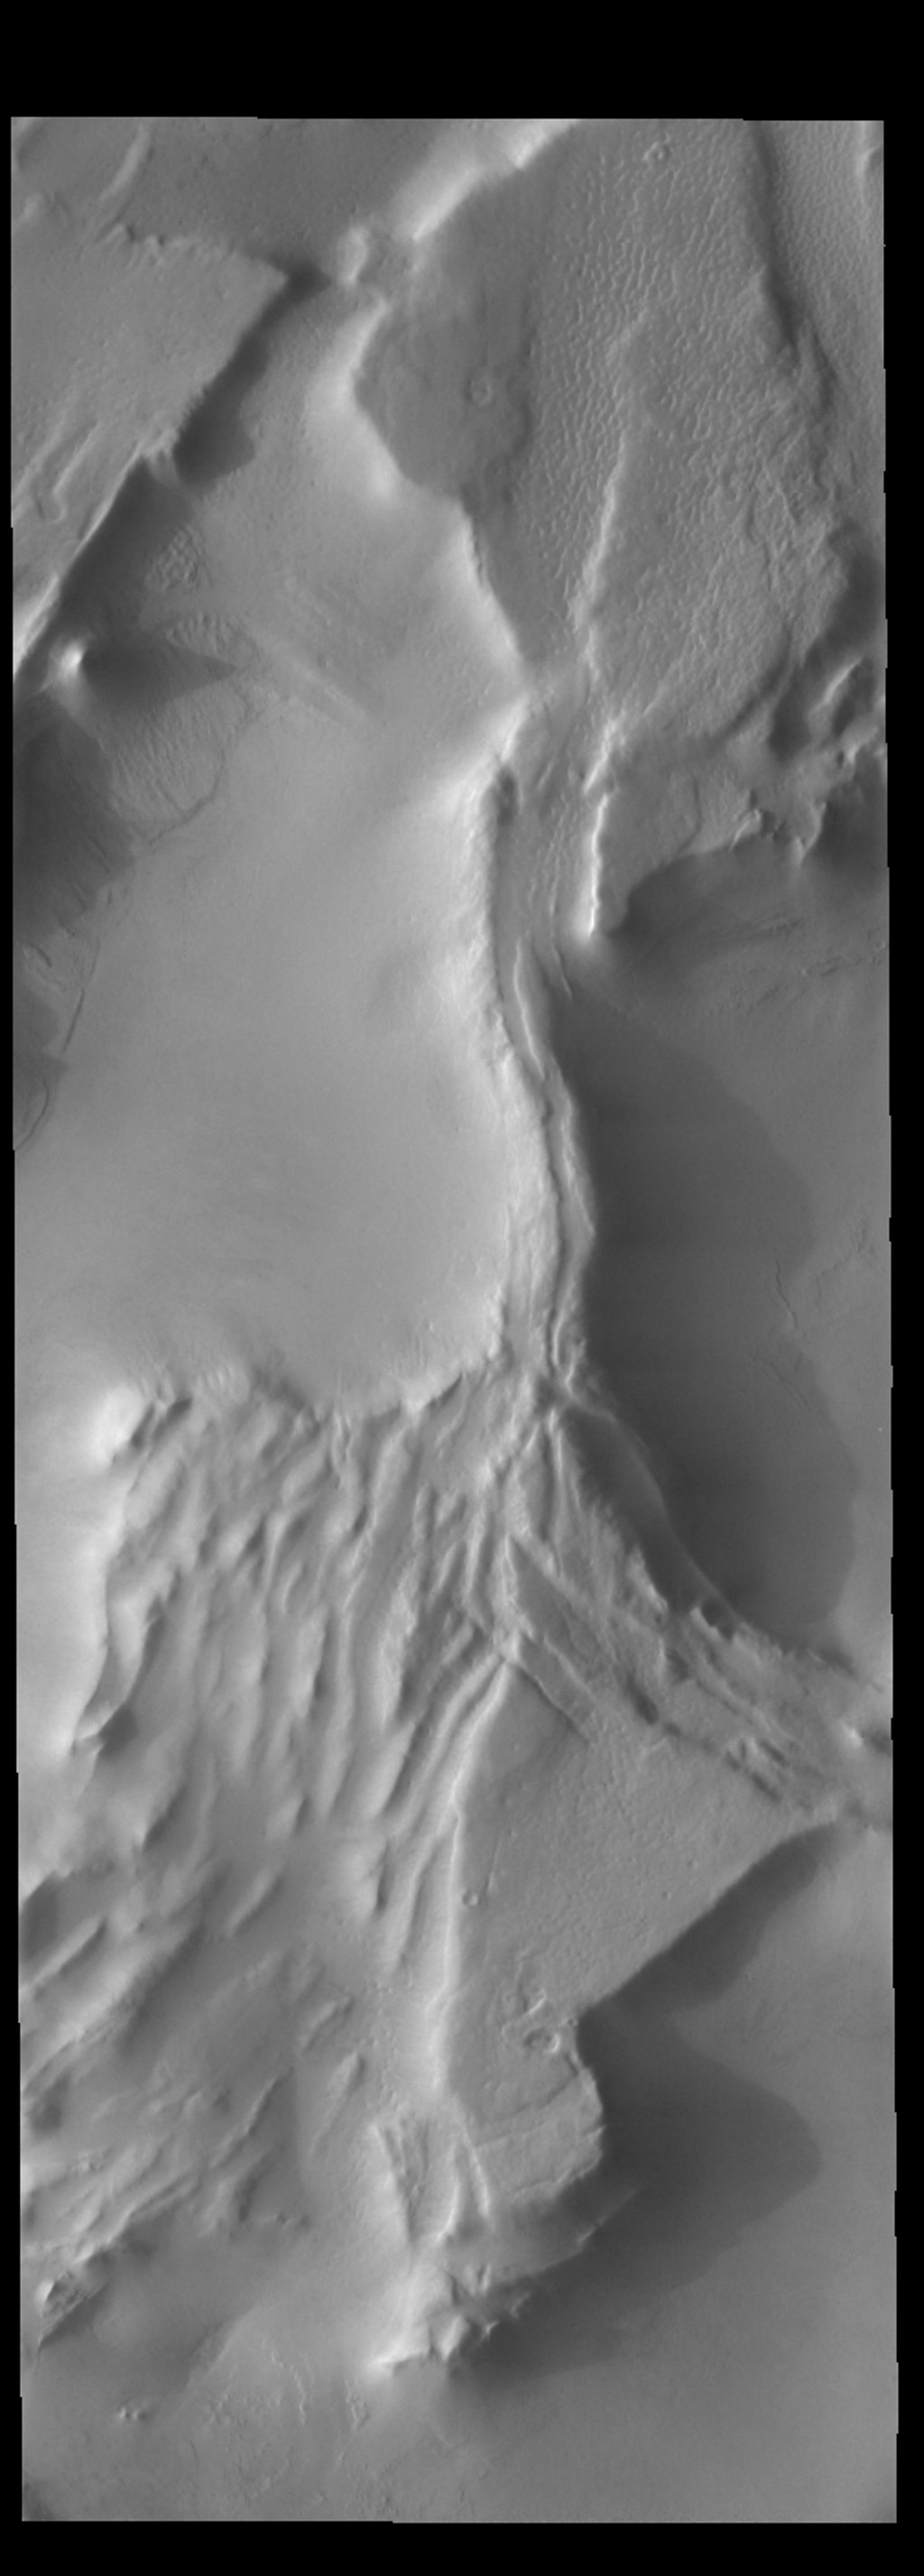 The ridges in this image from NASA's 2001 Mars Odyssey spacecraft are creating shadows due to low sun angle.